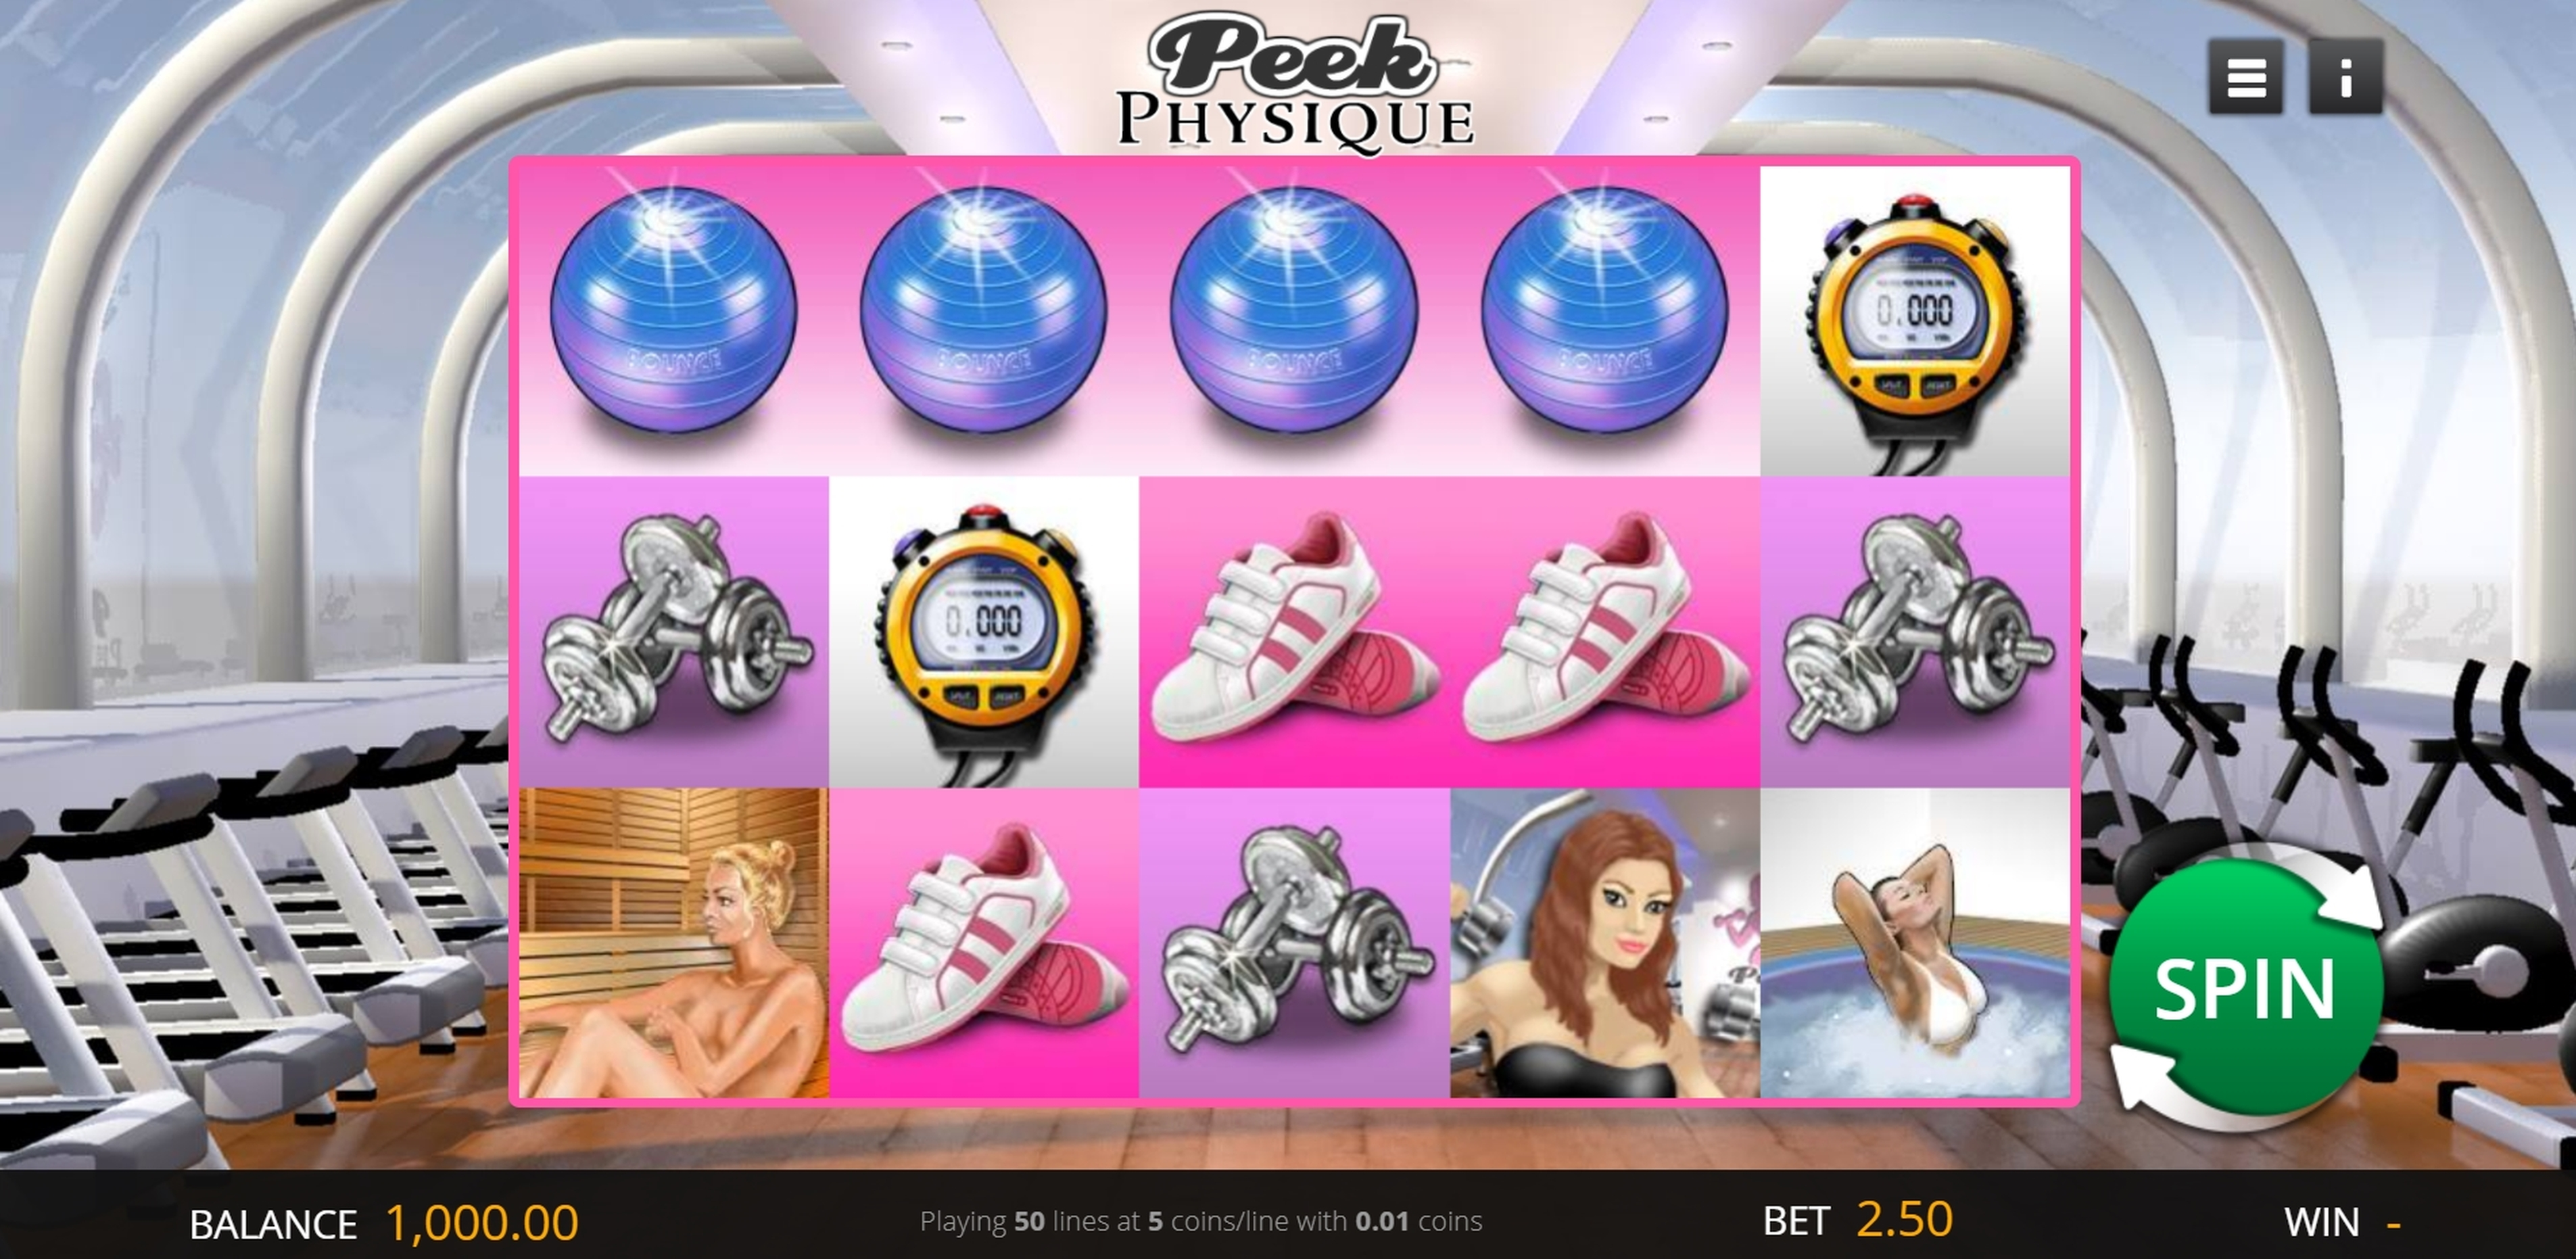 Reels in Peek Physique Slot Game by Genii